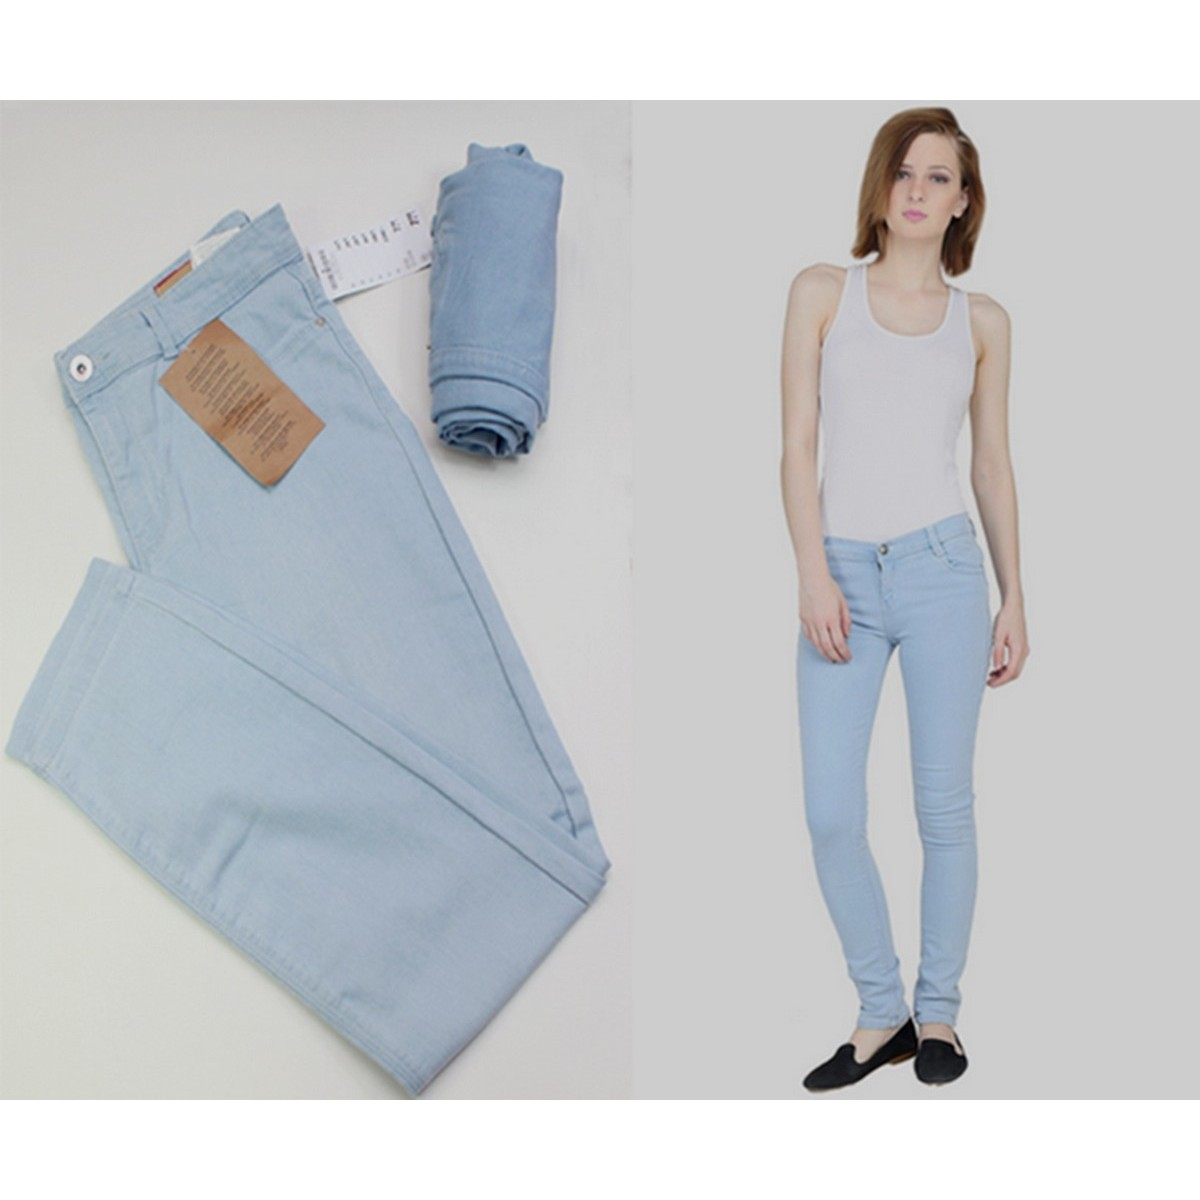 Slim Ladies Girls jeans  Stretchable Pents With no Front Pockets Sky Blue